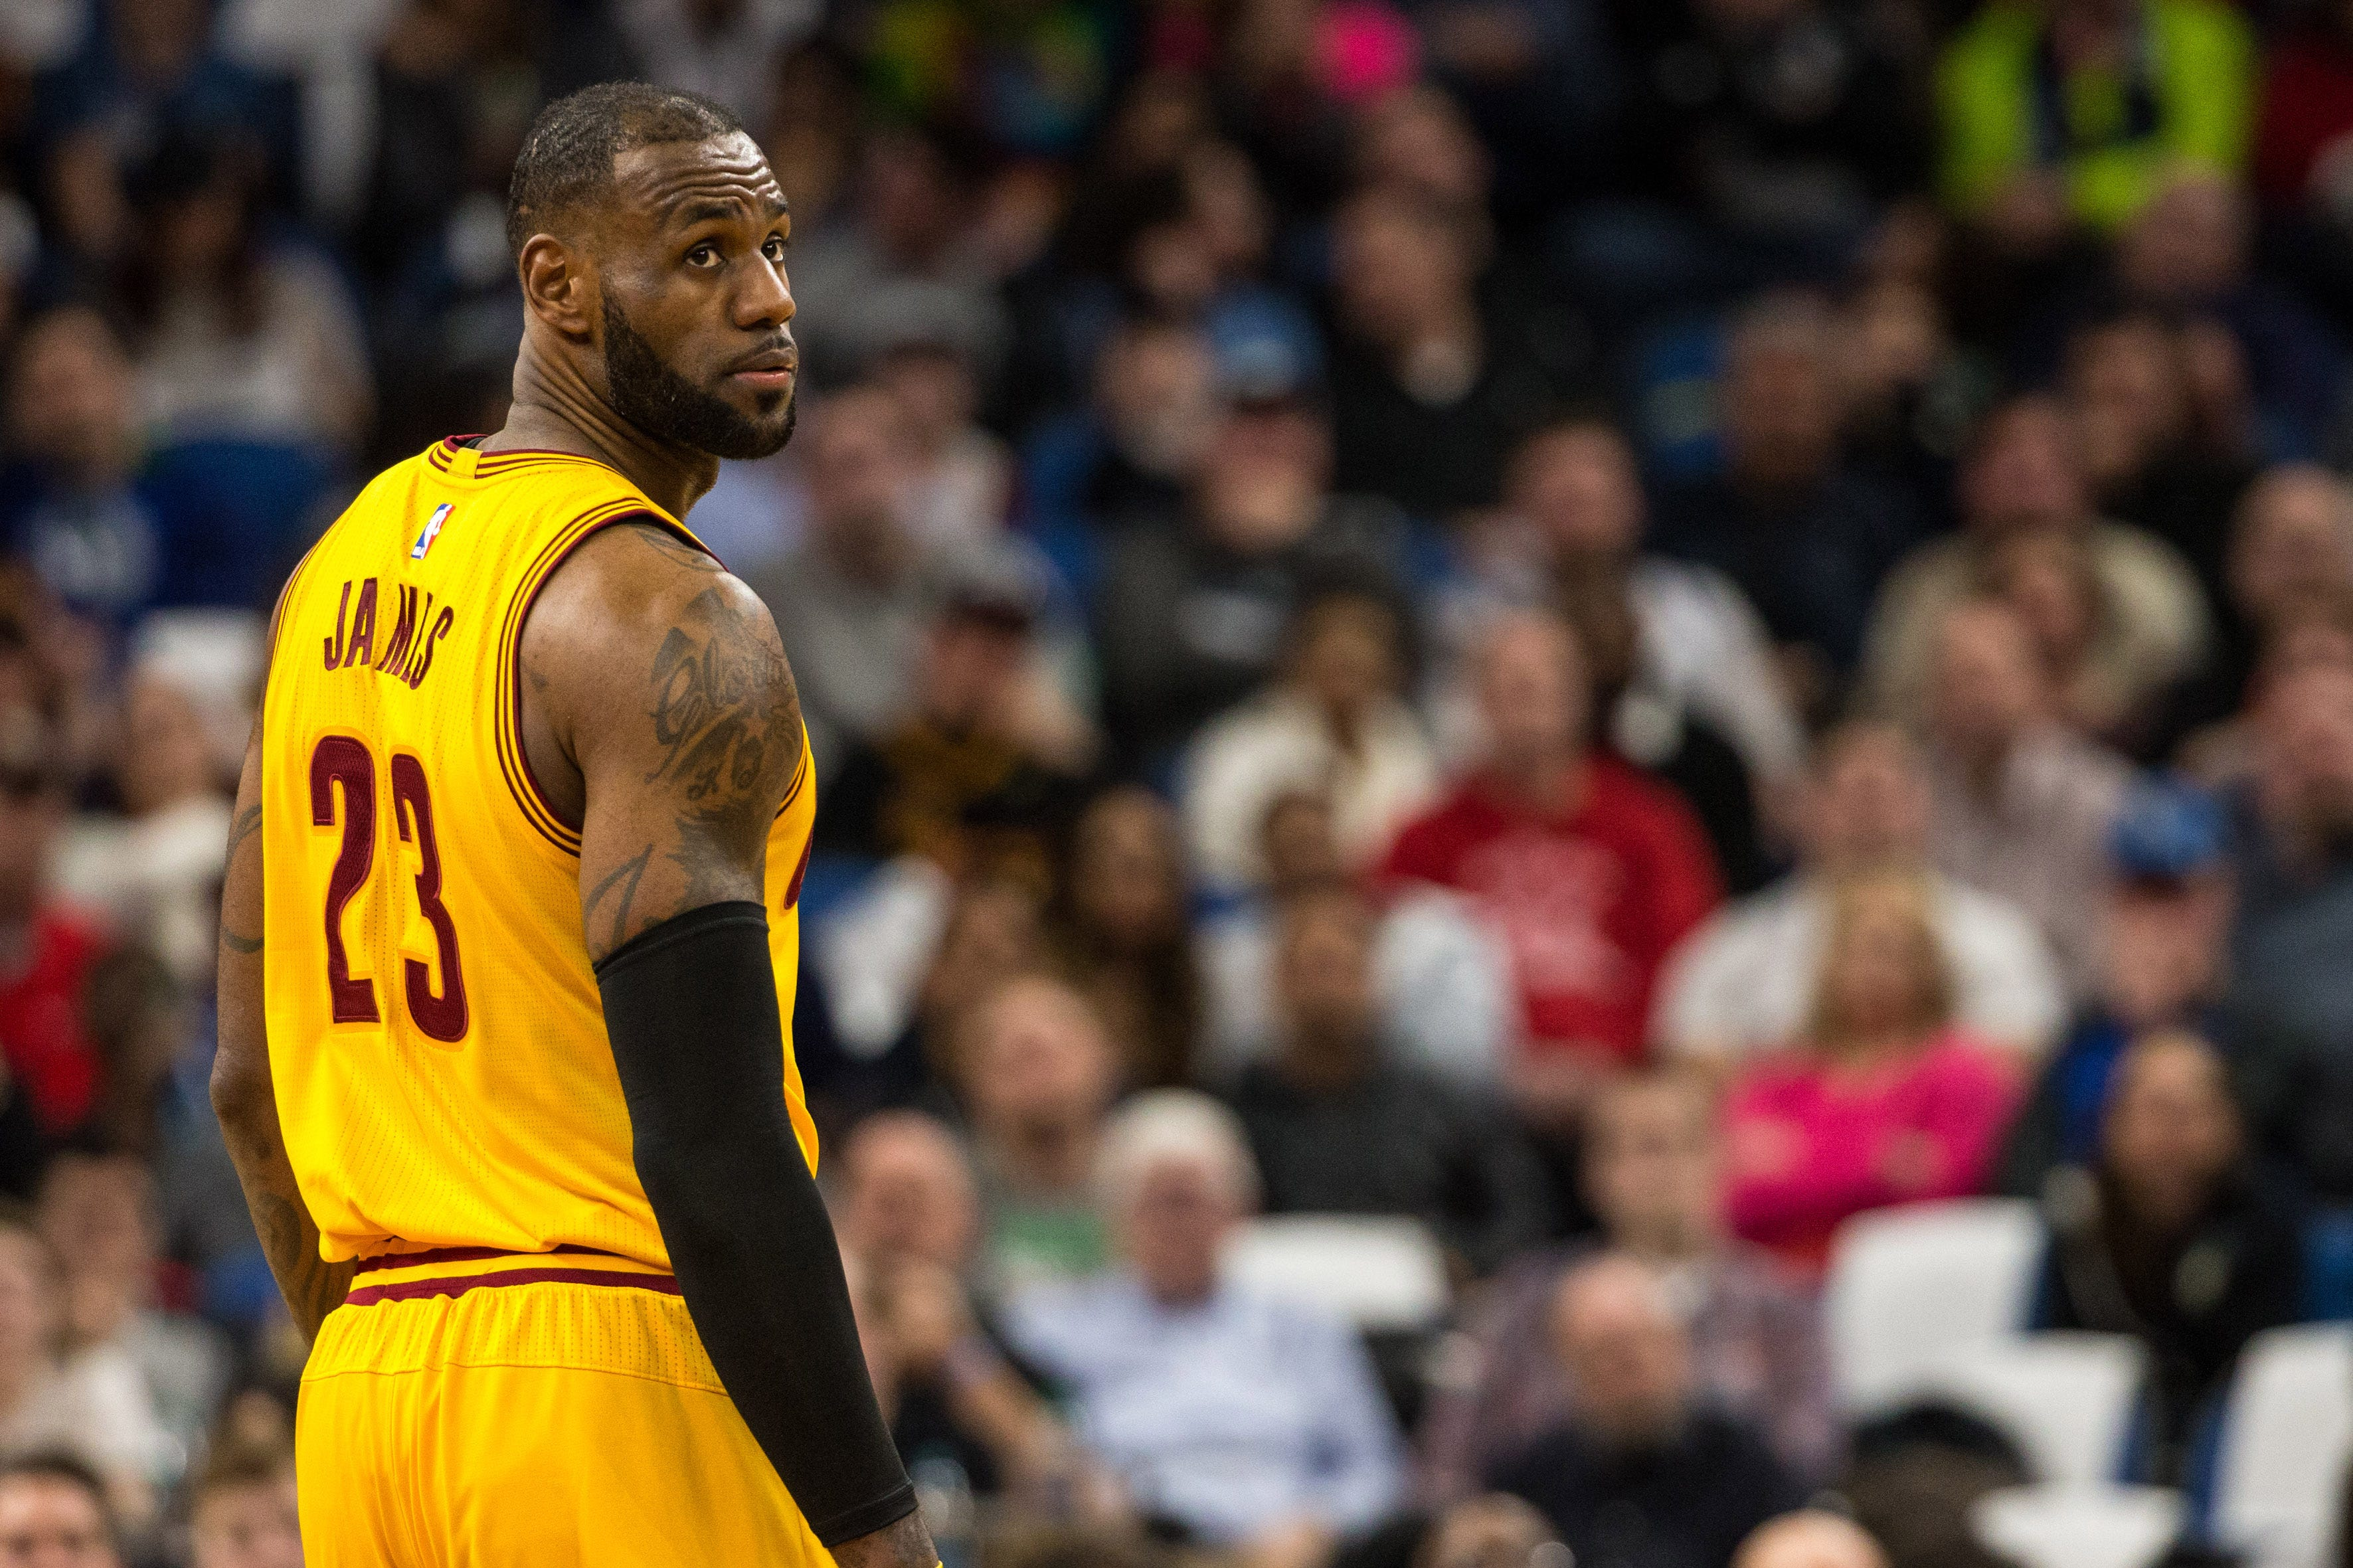 LeBron James feels 'very good' about Cavaliers' chances vs. Warriors